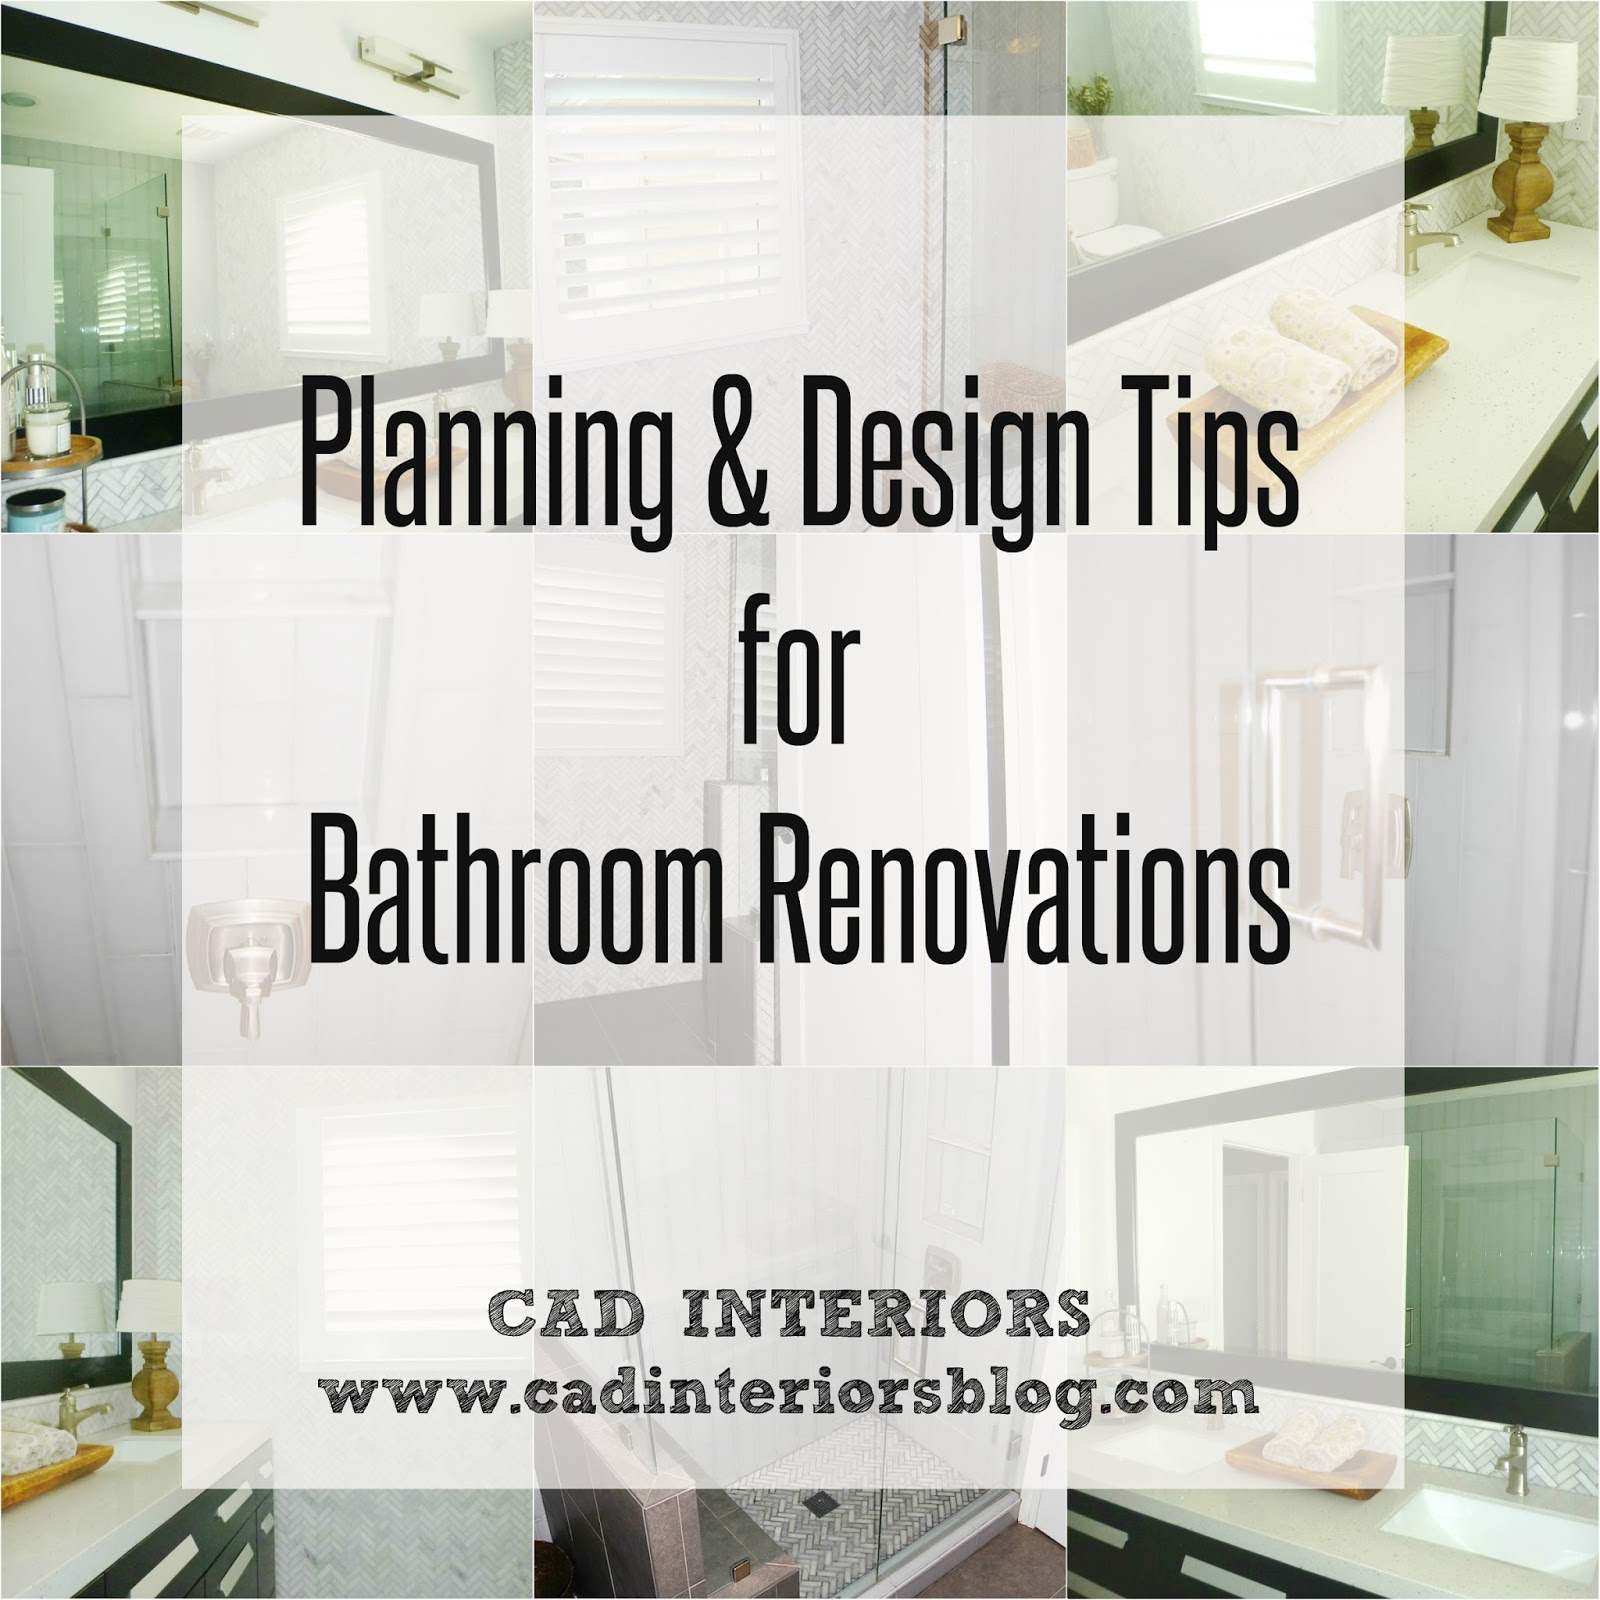 Bathroom Renovation Tips Part 1 {Budget, Layout, Function, Inspection}. CAD  INTERIORS Bathroom Remodel Interior Design ...